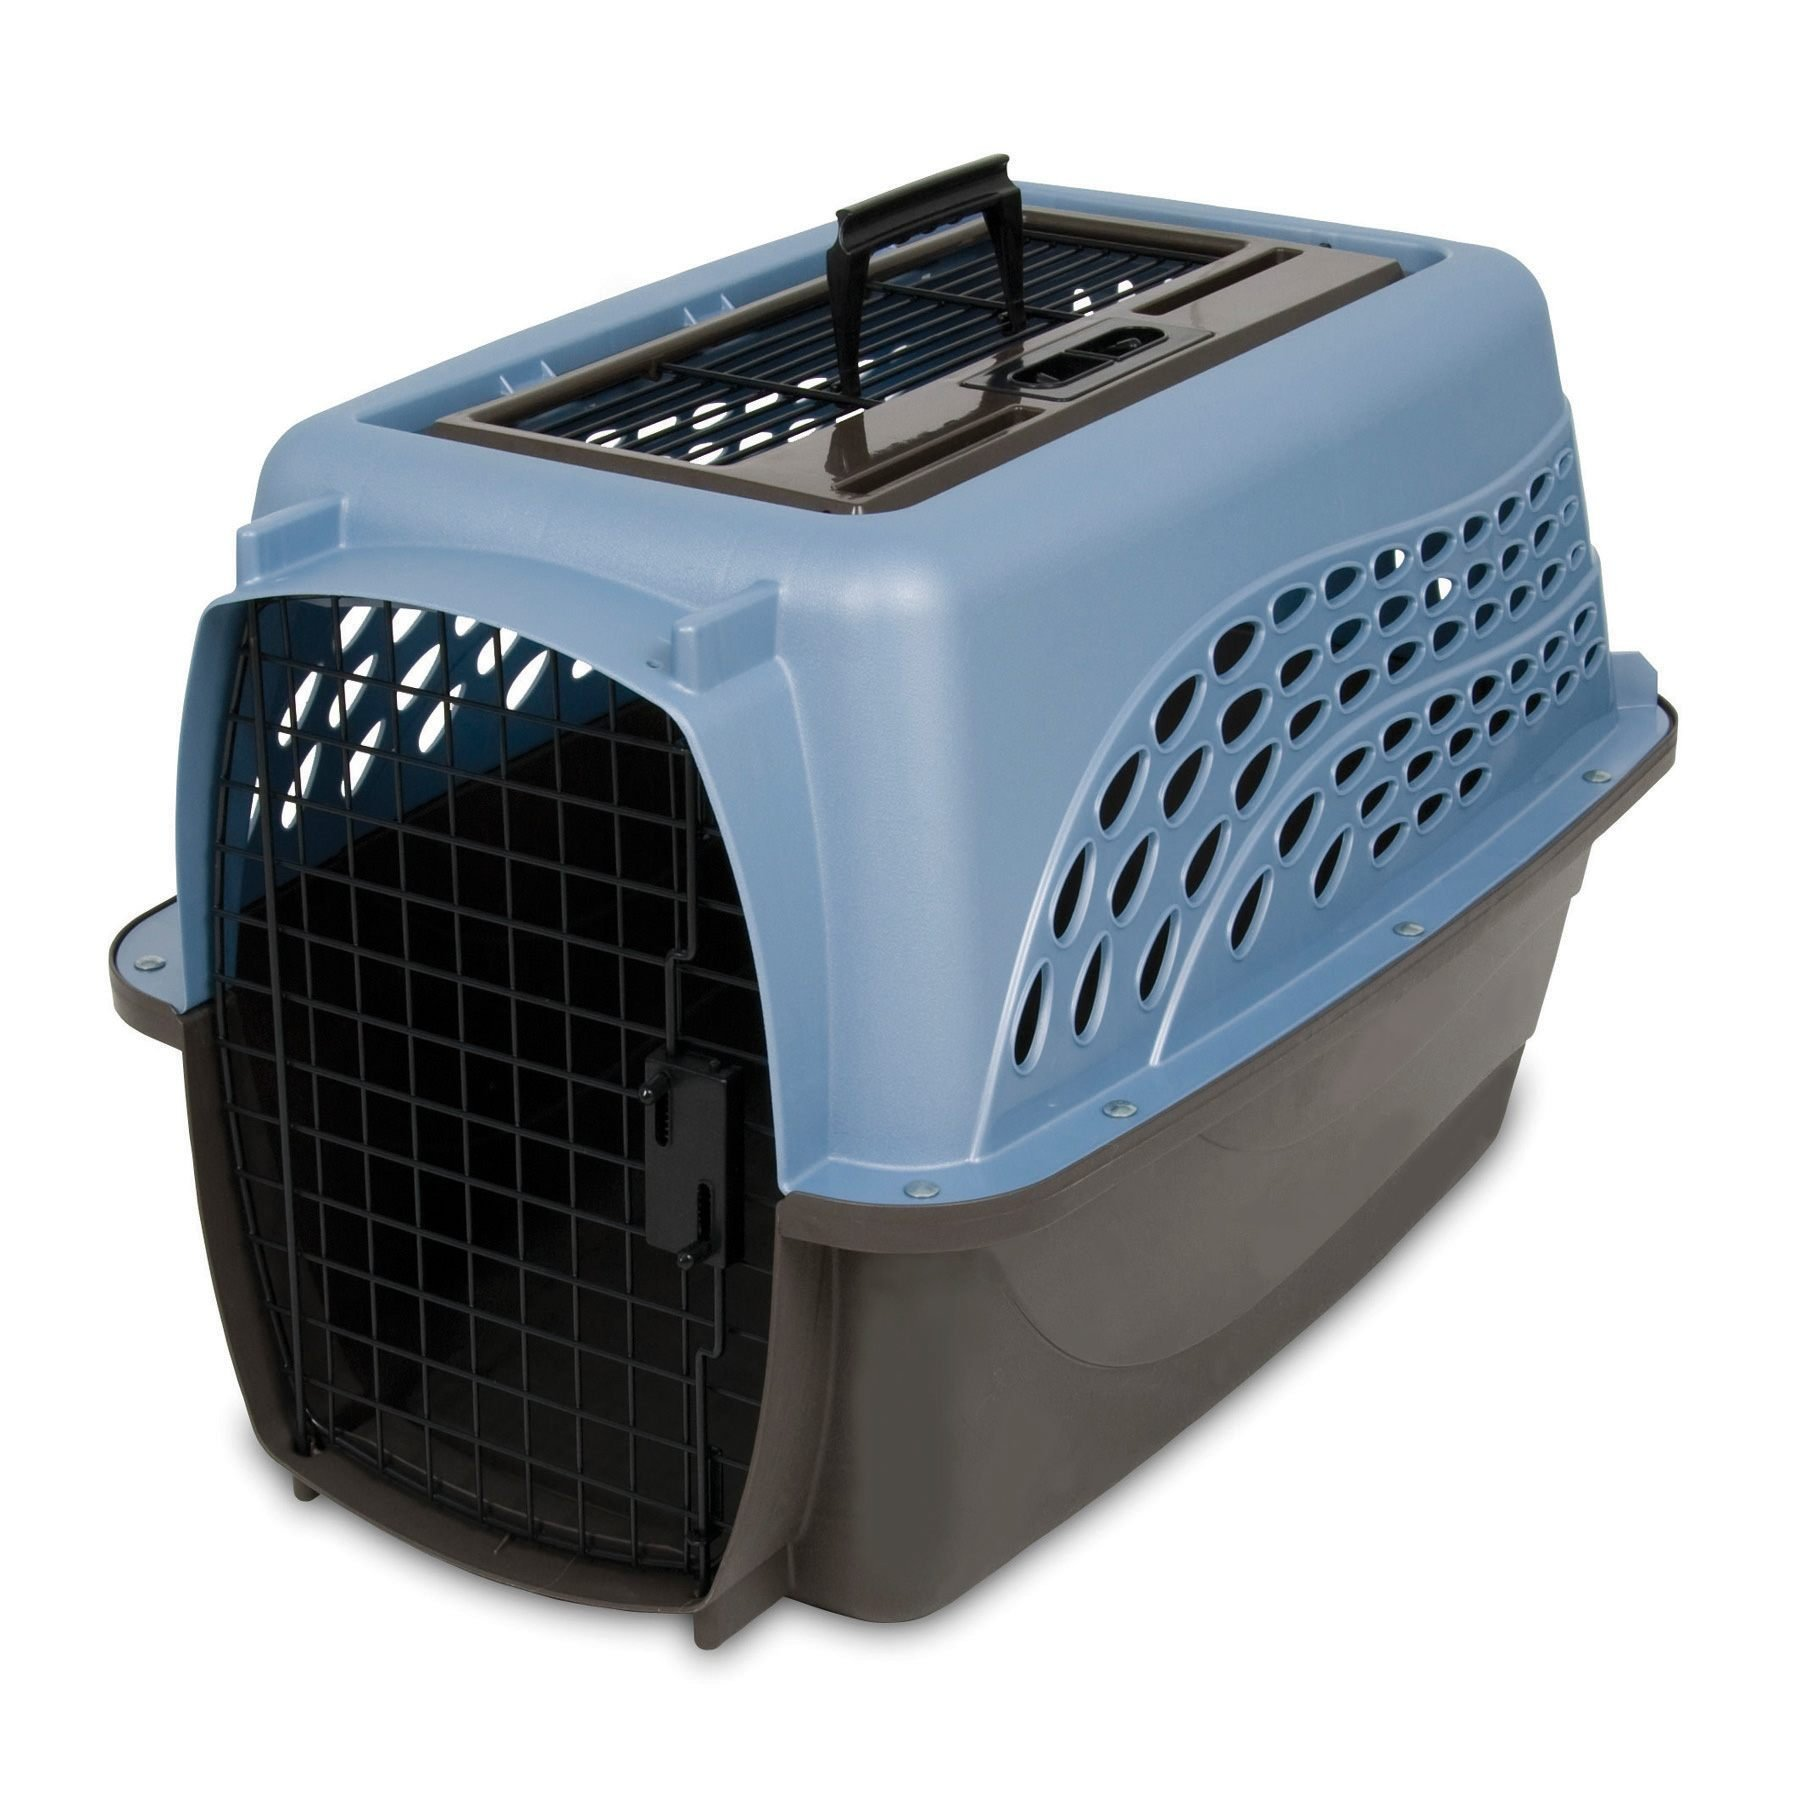 Petmate Two Door Top Load Dog Kennel - Assorted Colors